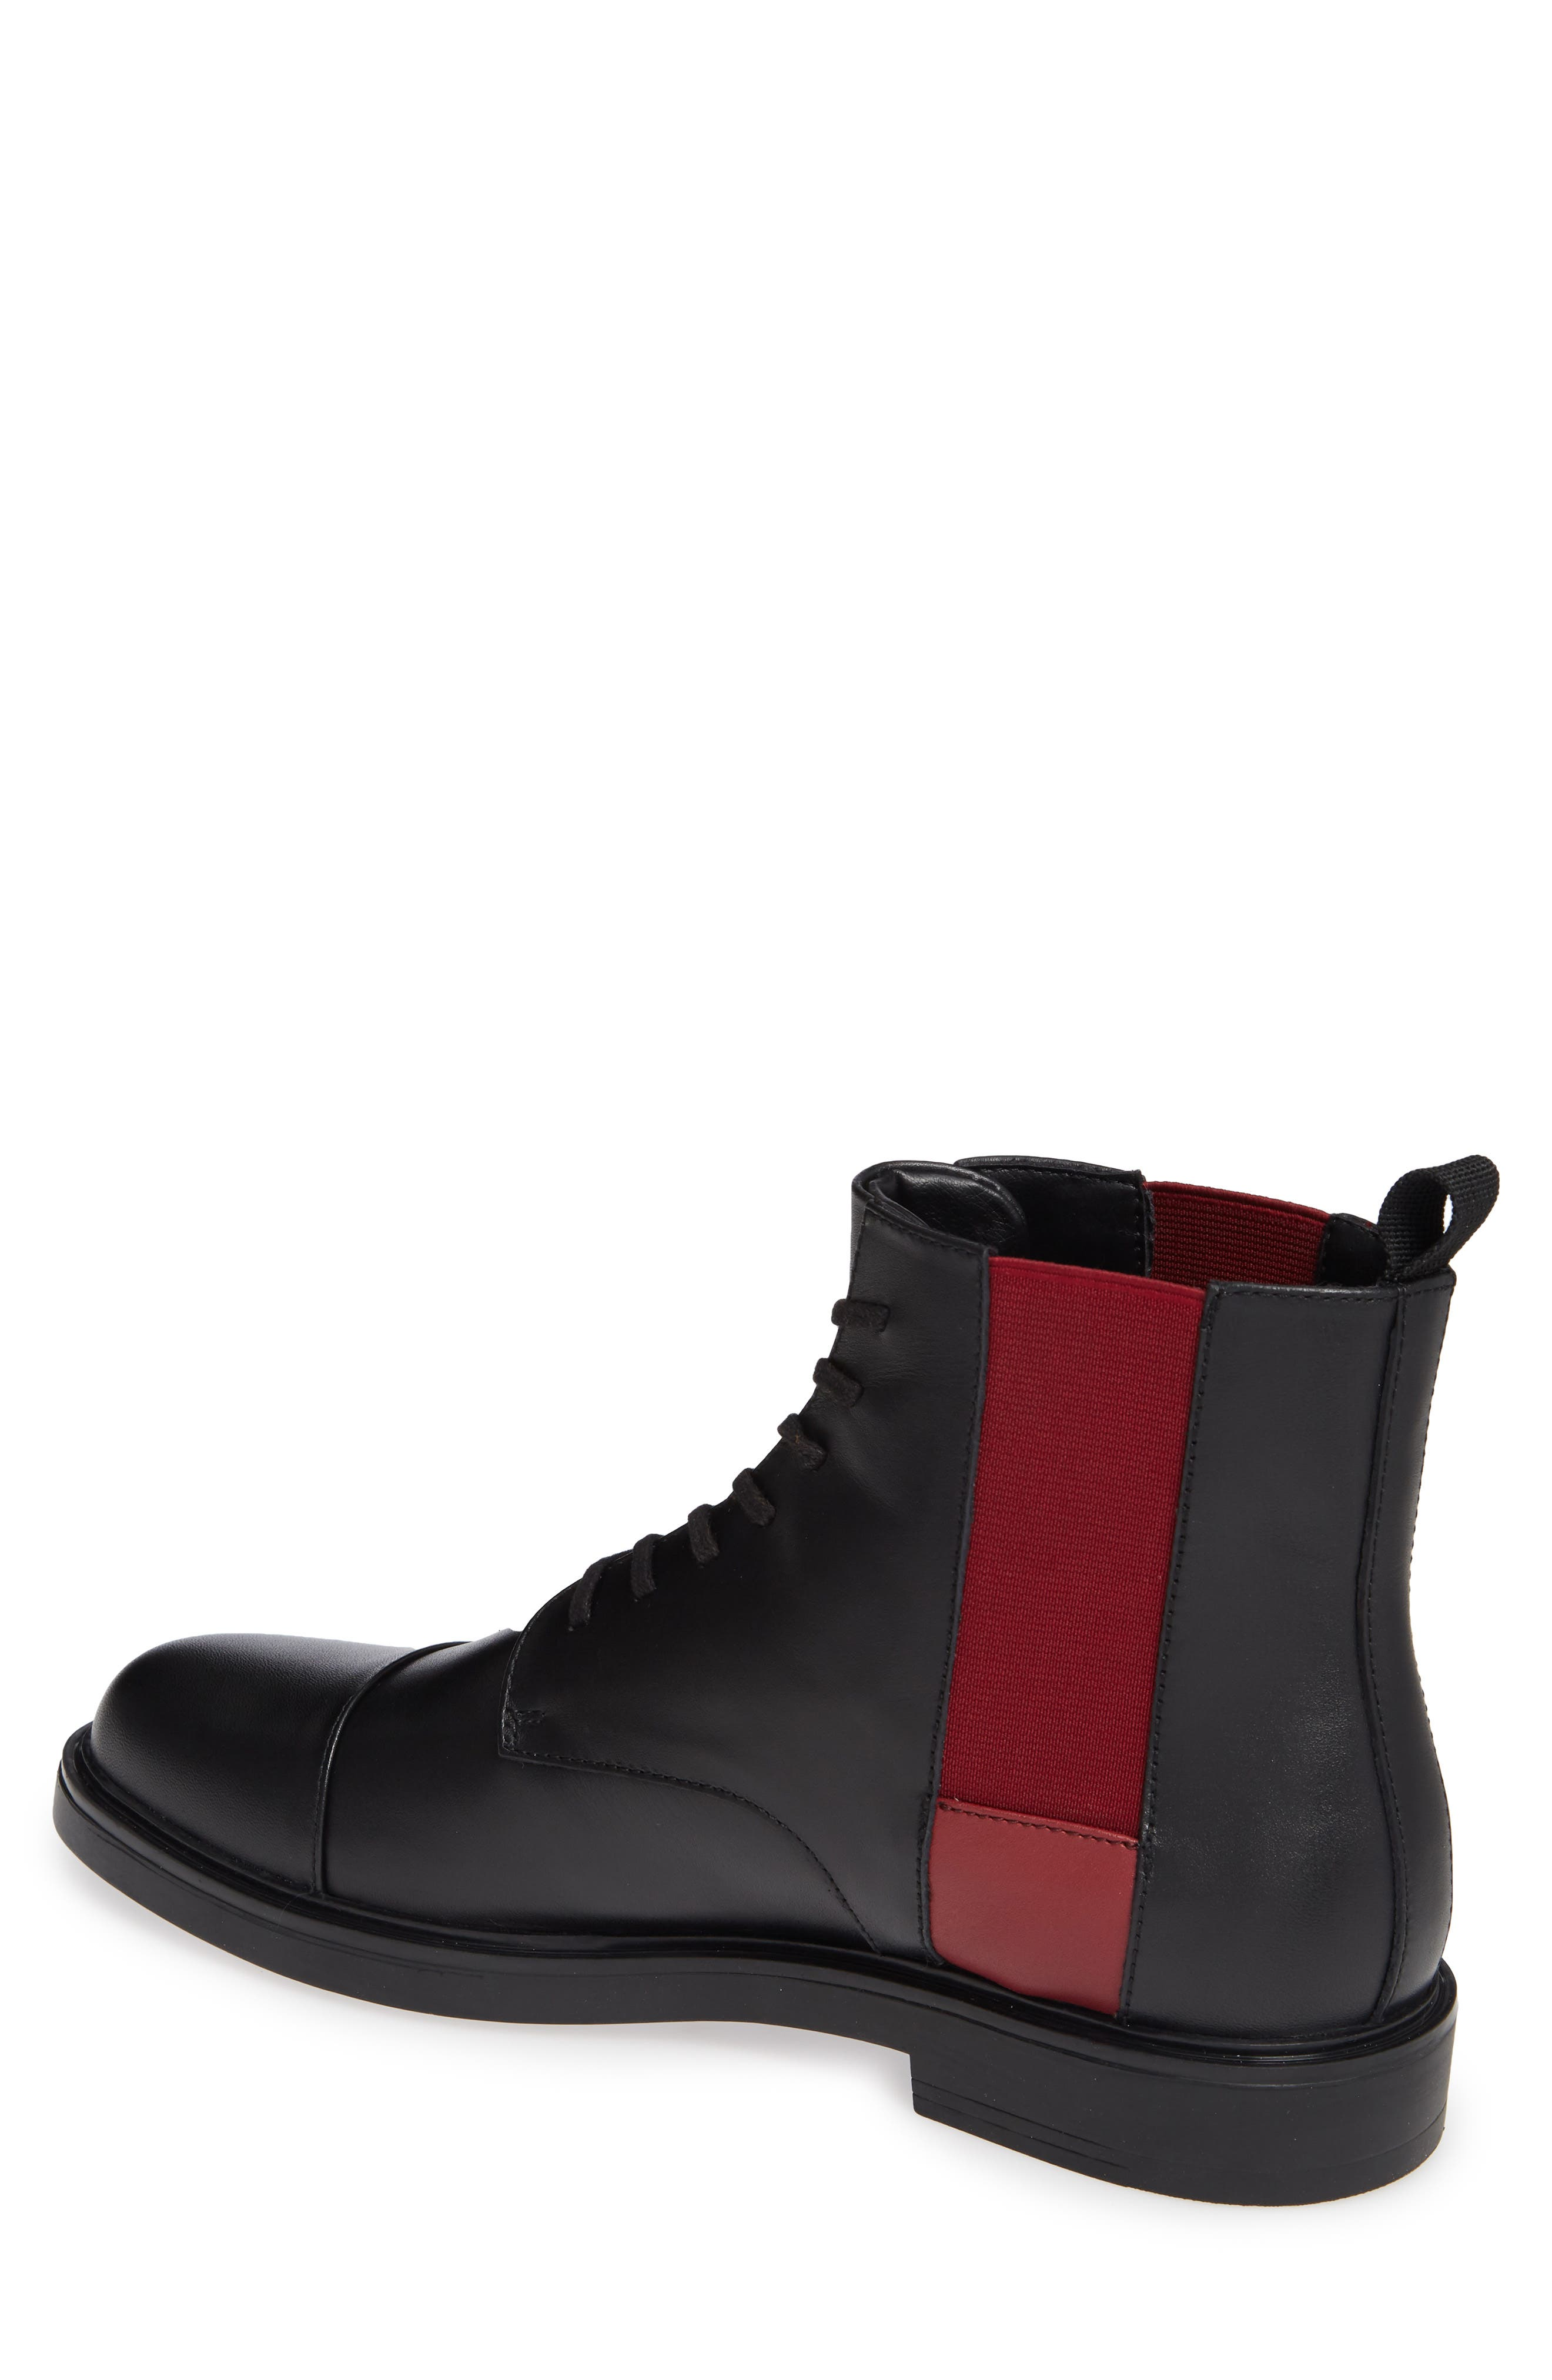 Dameon Lace-Up Boot,                             Alternate thumbnail 2, color,                             BLACK/ RED ROCK LEATHER